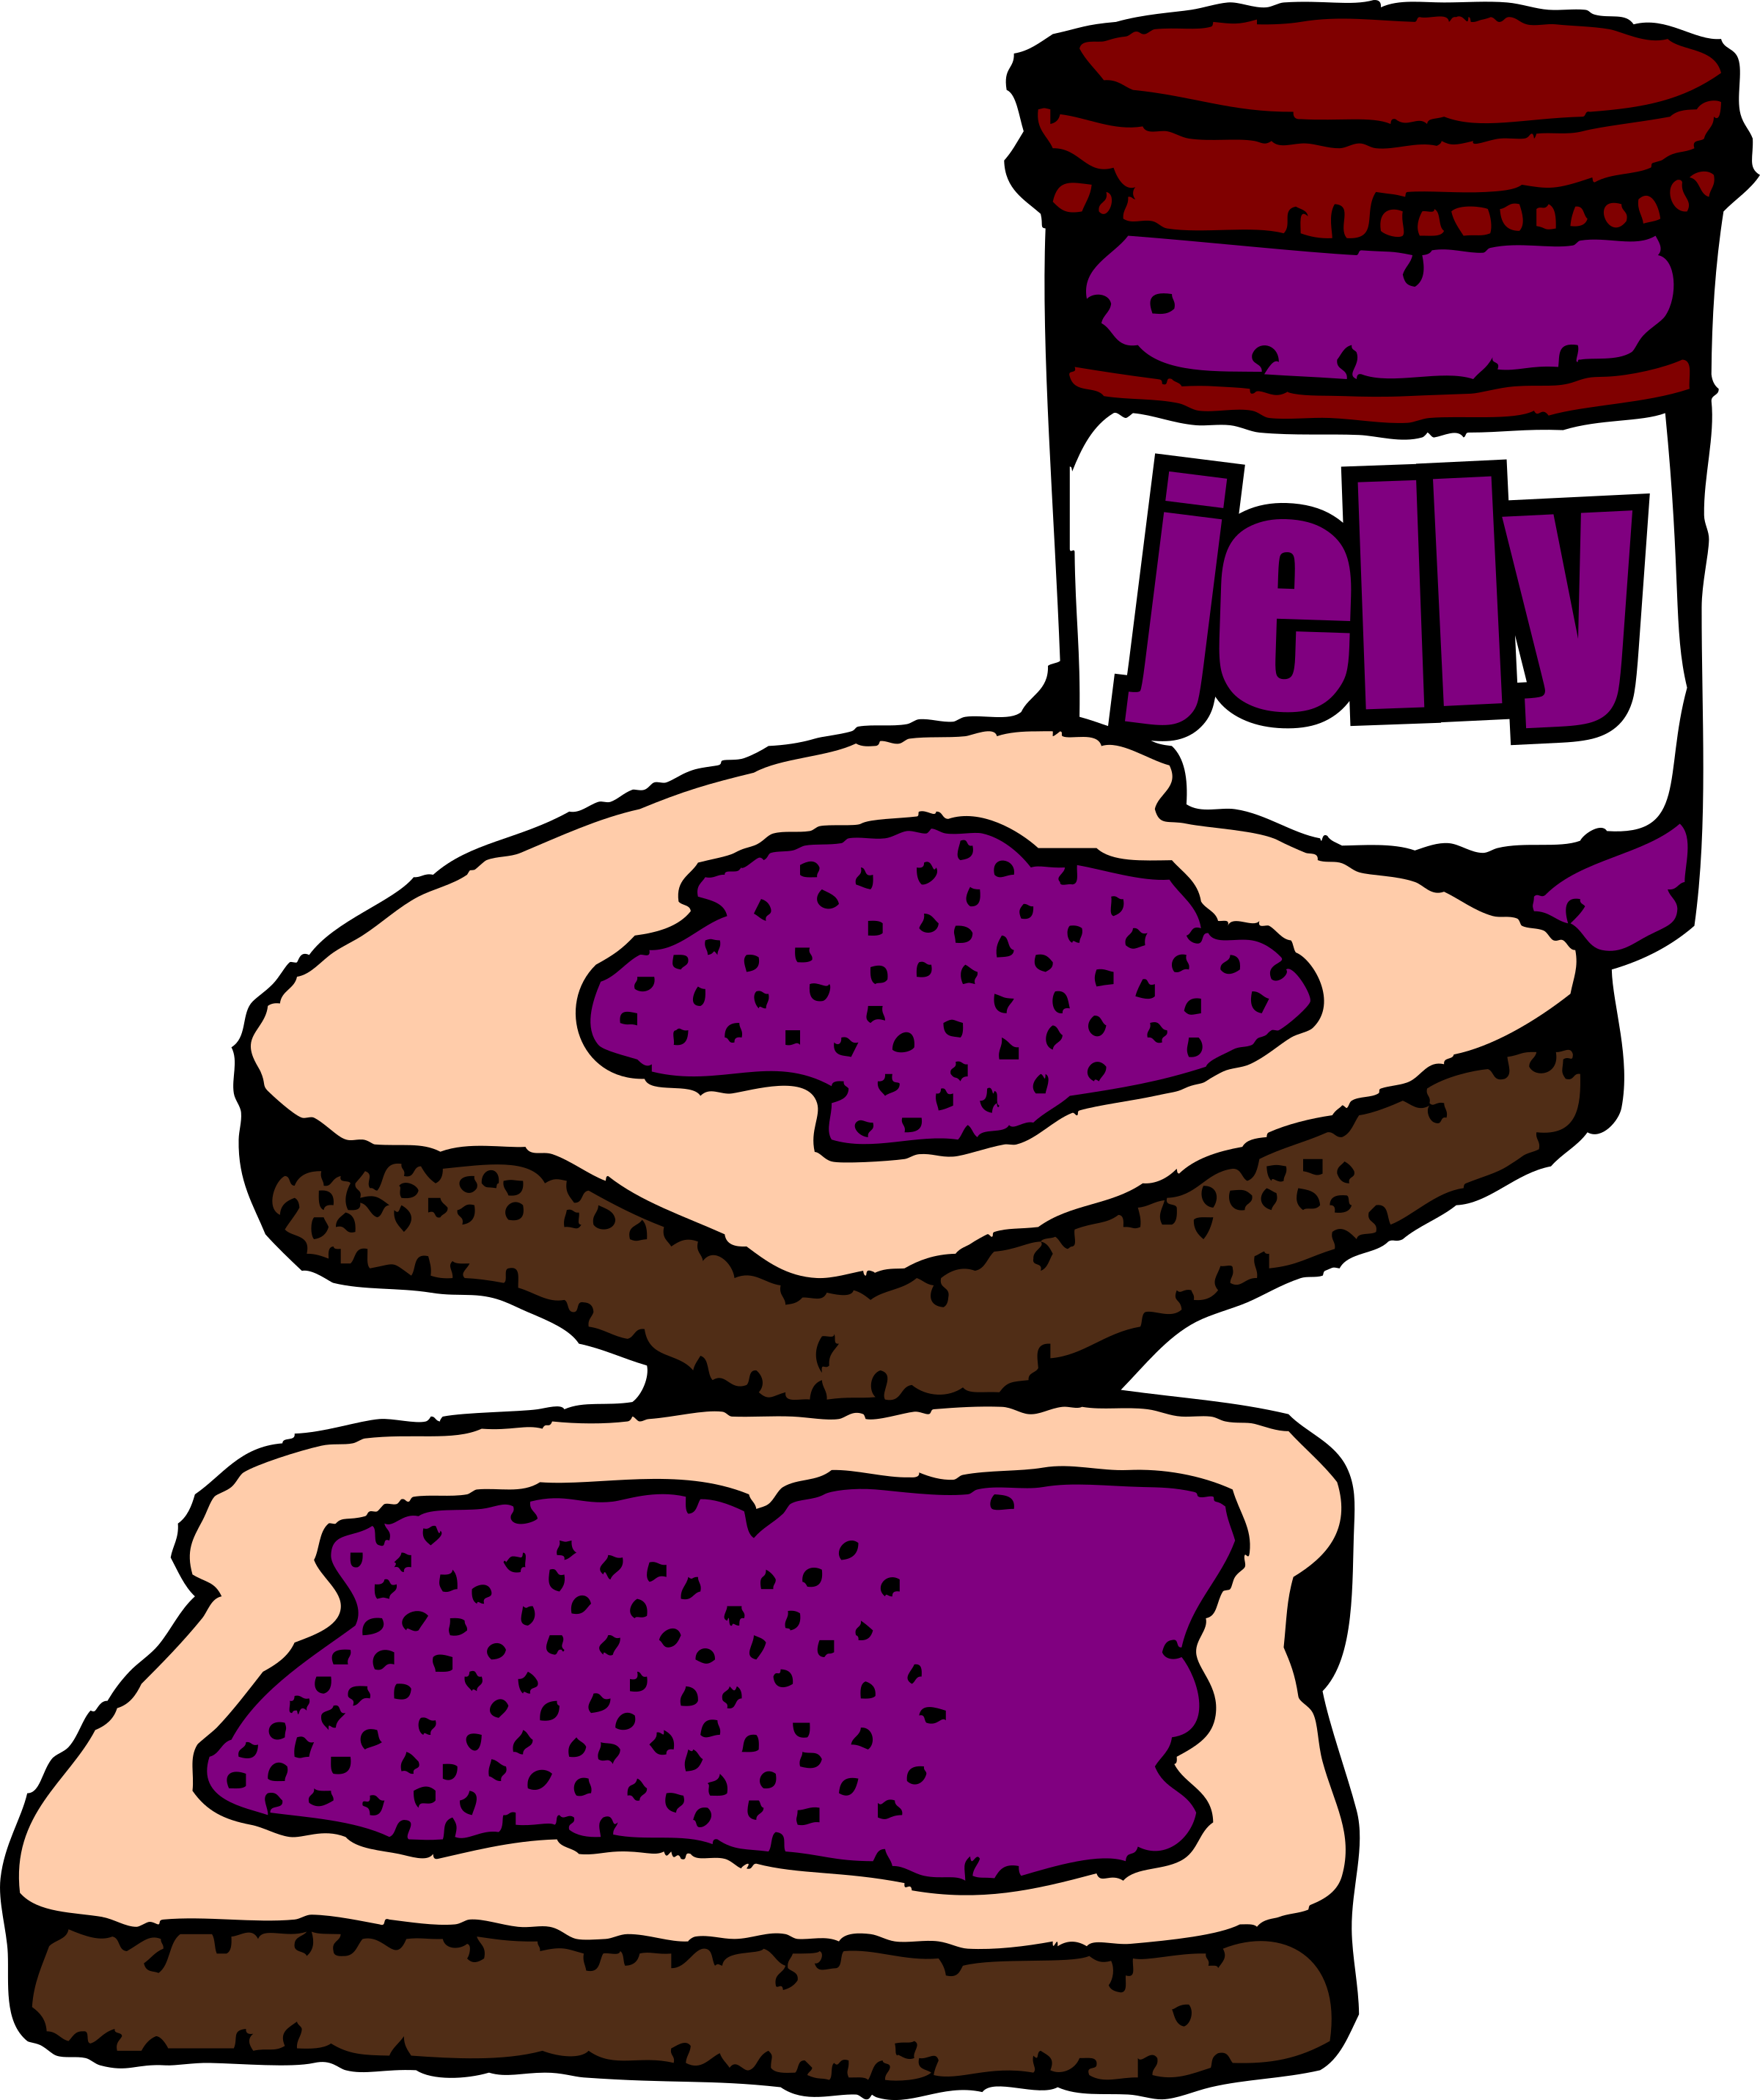 Making peanut butter sandwich clipart clipart stock Free Peanut Butter Cliparts, Download Free Clip Art, Free ... clipart stock